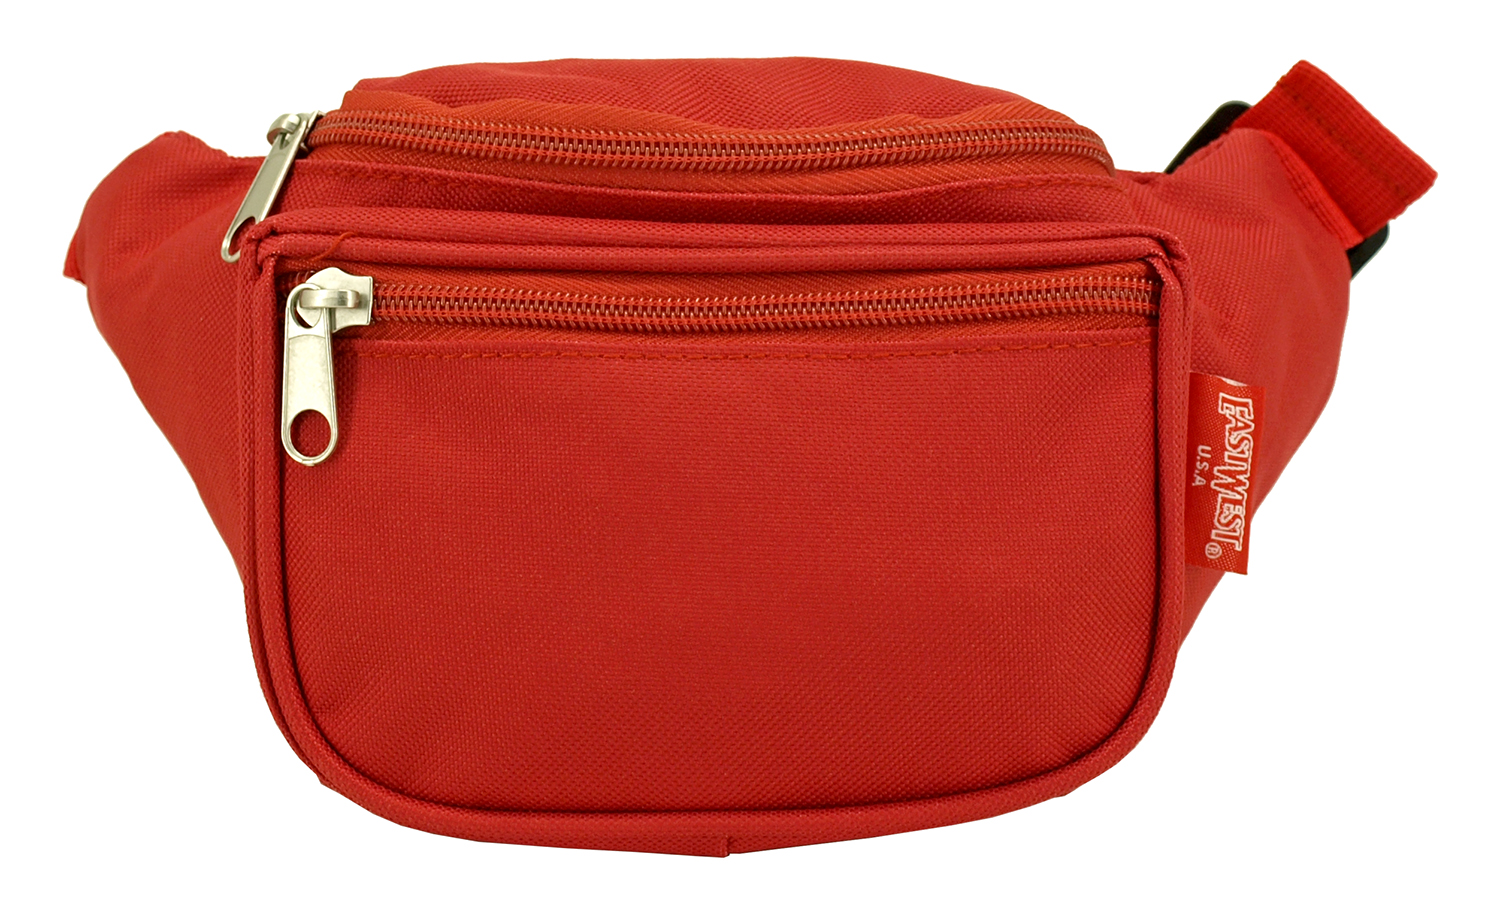 Medium Daily Fanny Pack with Pouch - Red